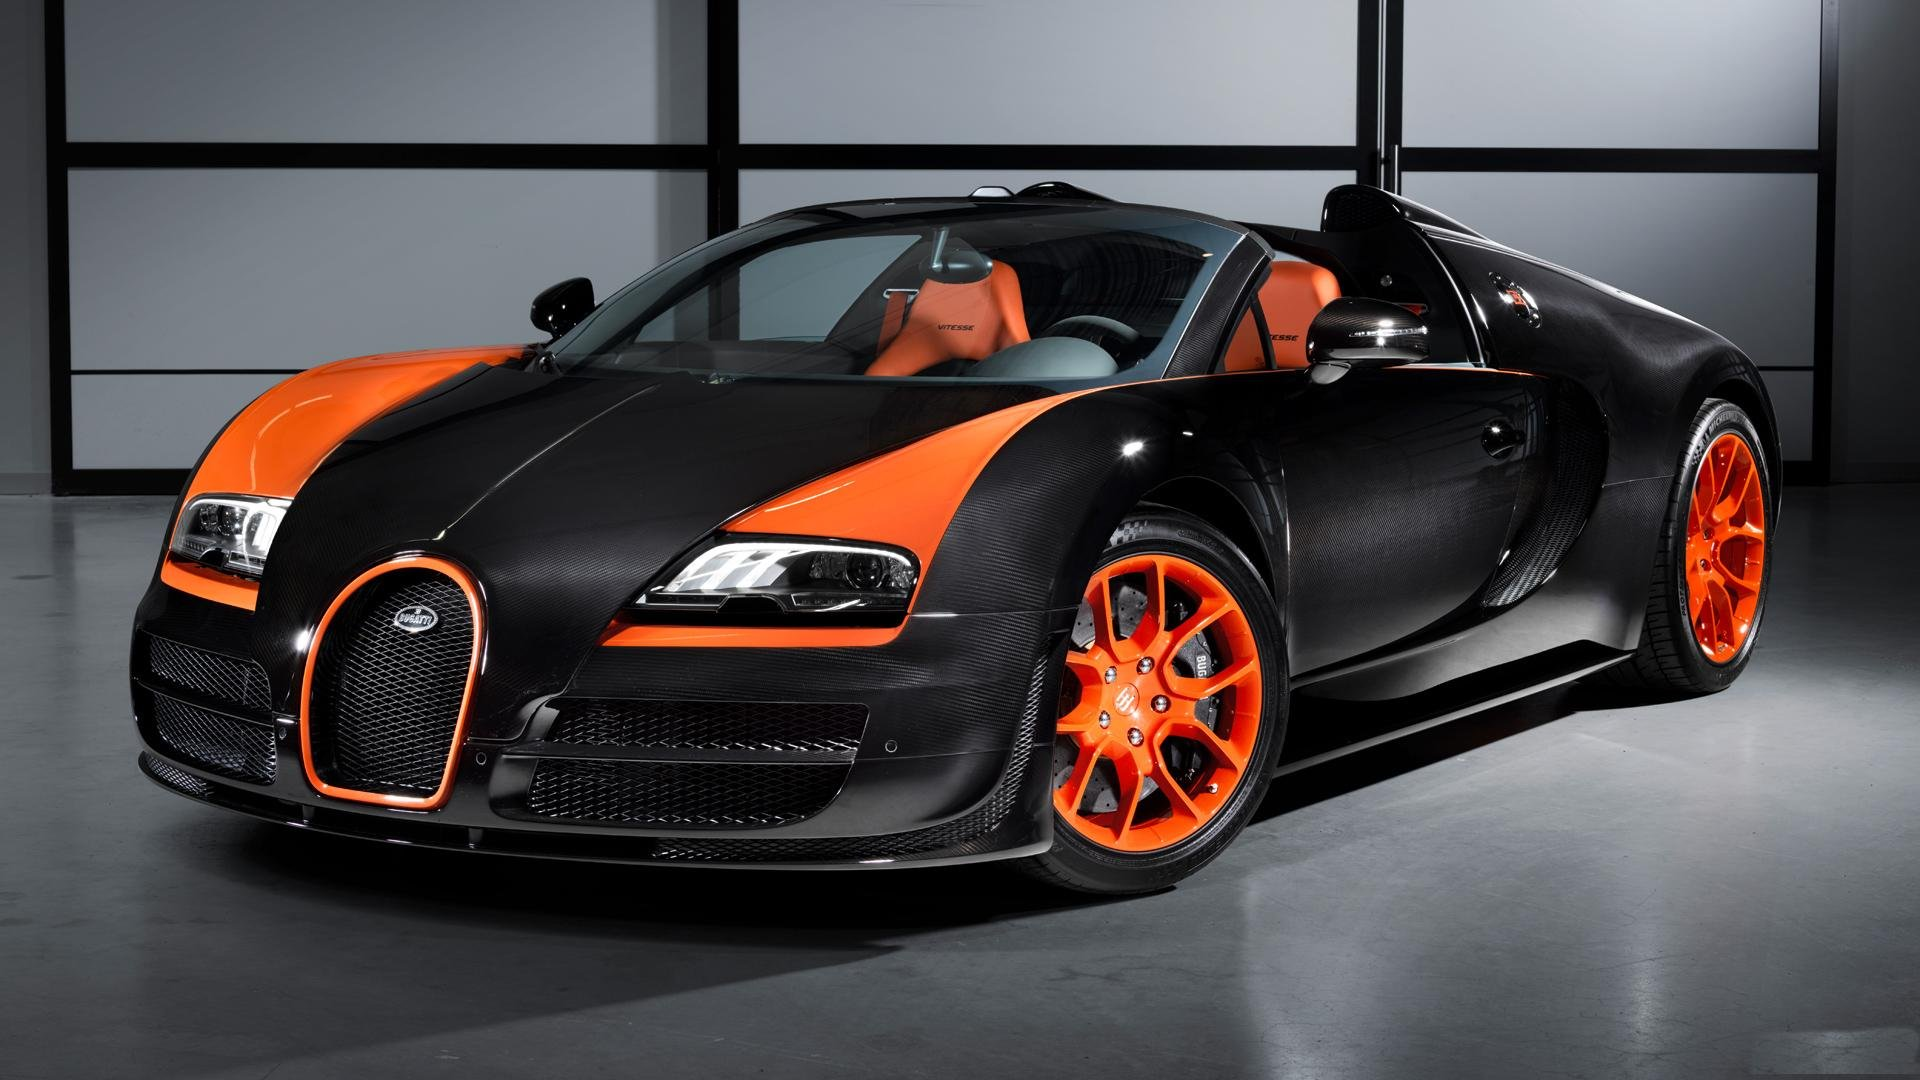 2013 bugatti veyron 16 4 grand sport vitesse wrc wallpaper 1920x1080 428350 wallpaperup. Black Bedroom Furniture Sets. Home Design Ideas